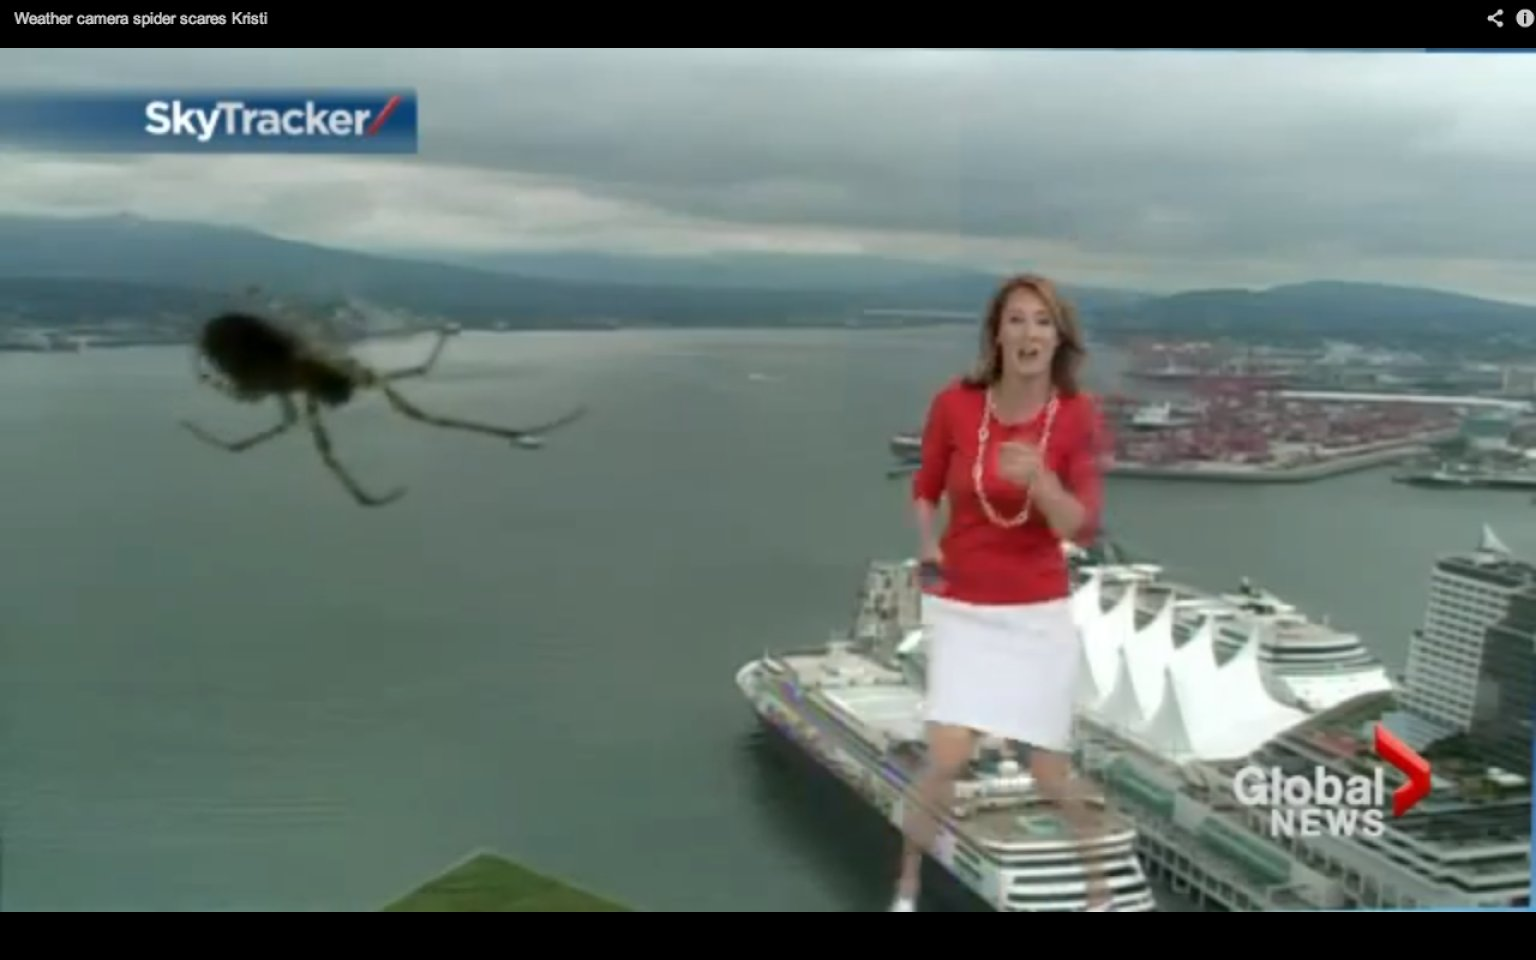 Real life giants spider - photo#24